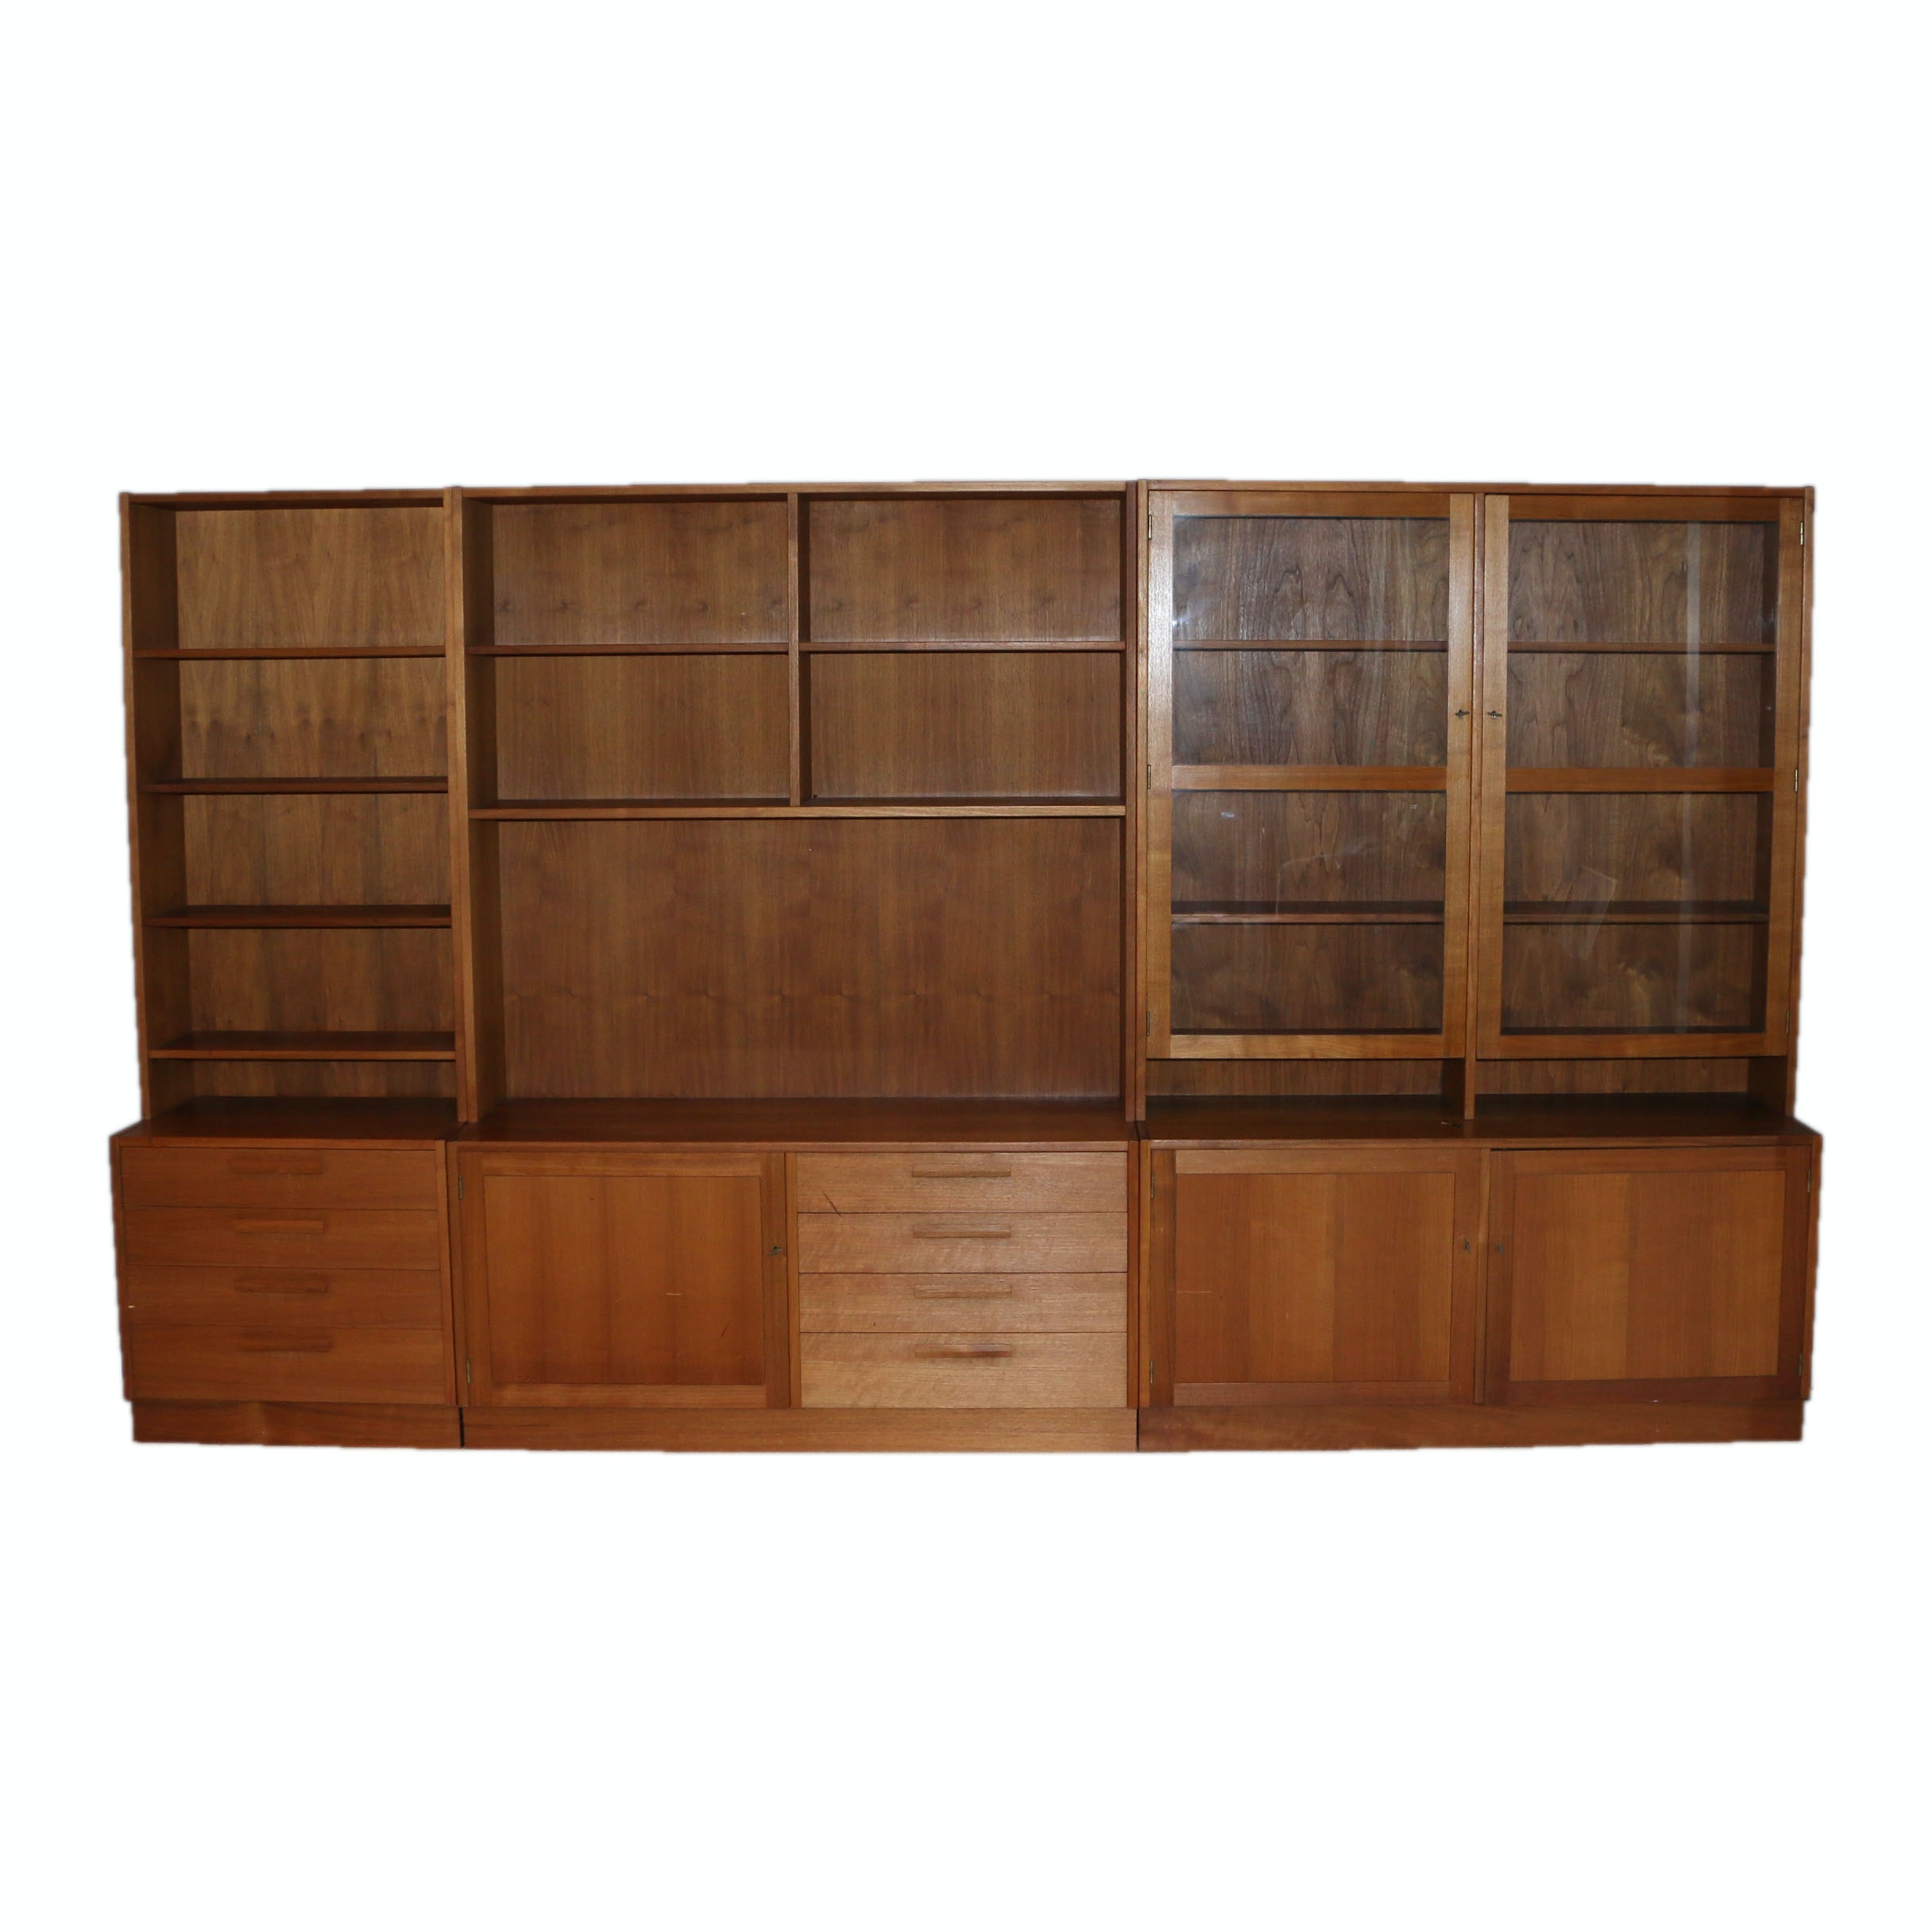 Six Piece Shelving Cabinet and Curio Unit by Troeds